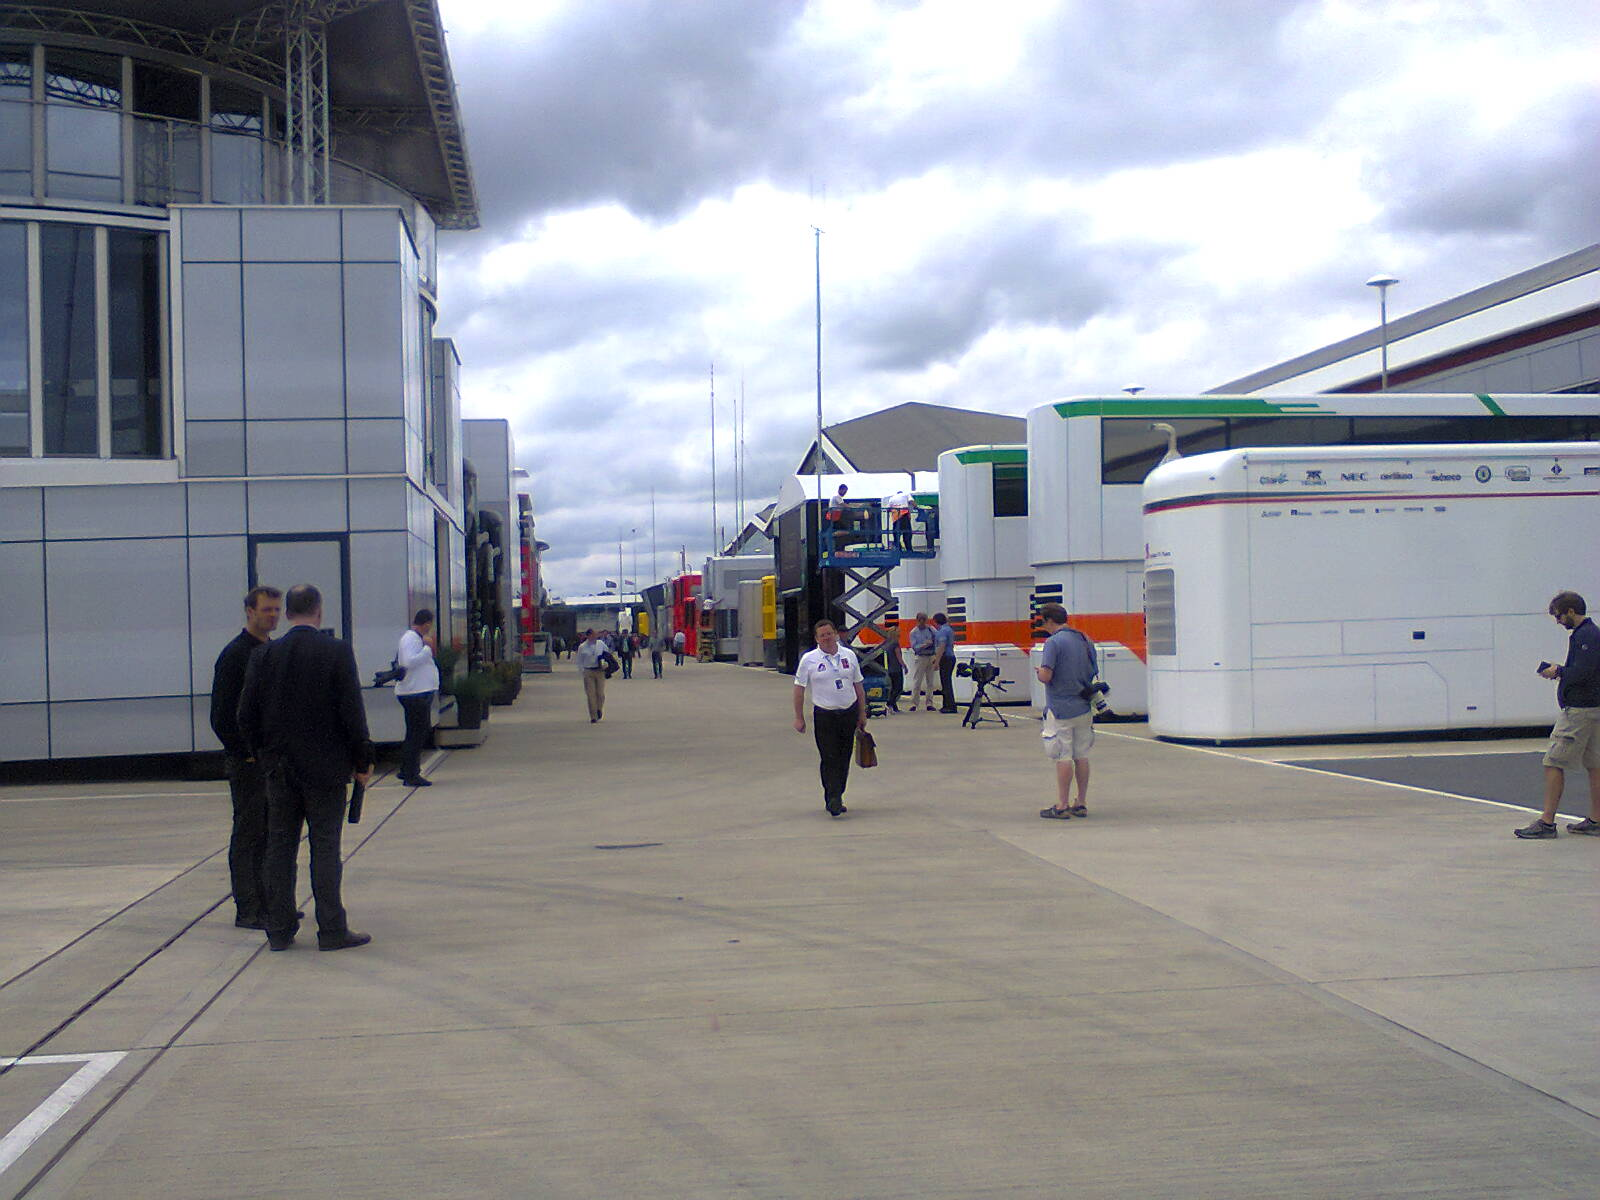 Thursday at Silverstone